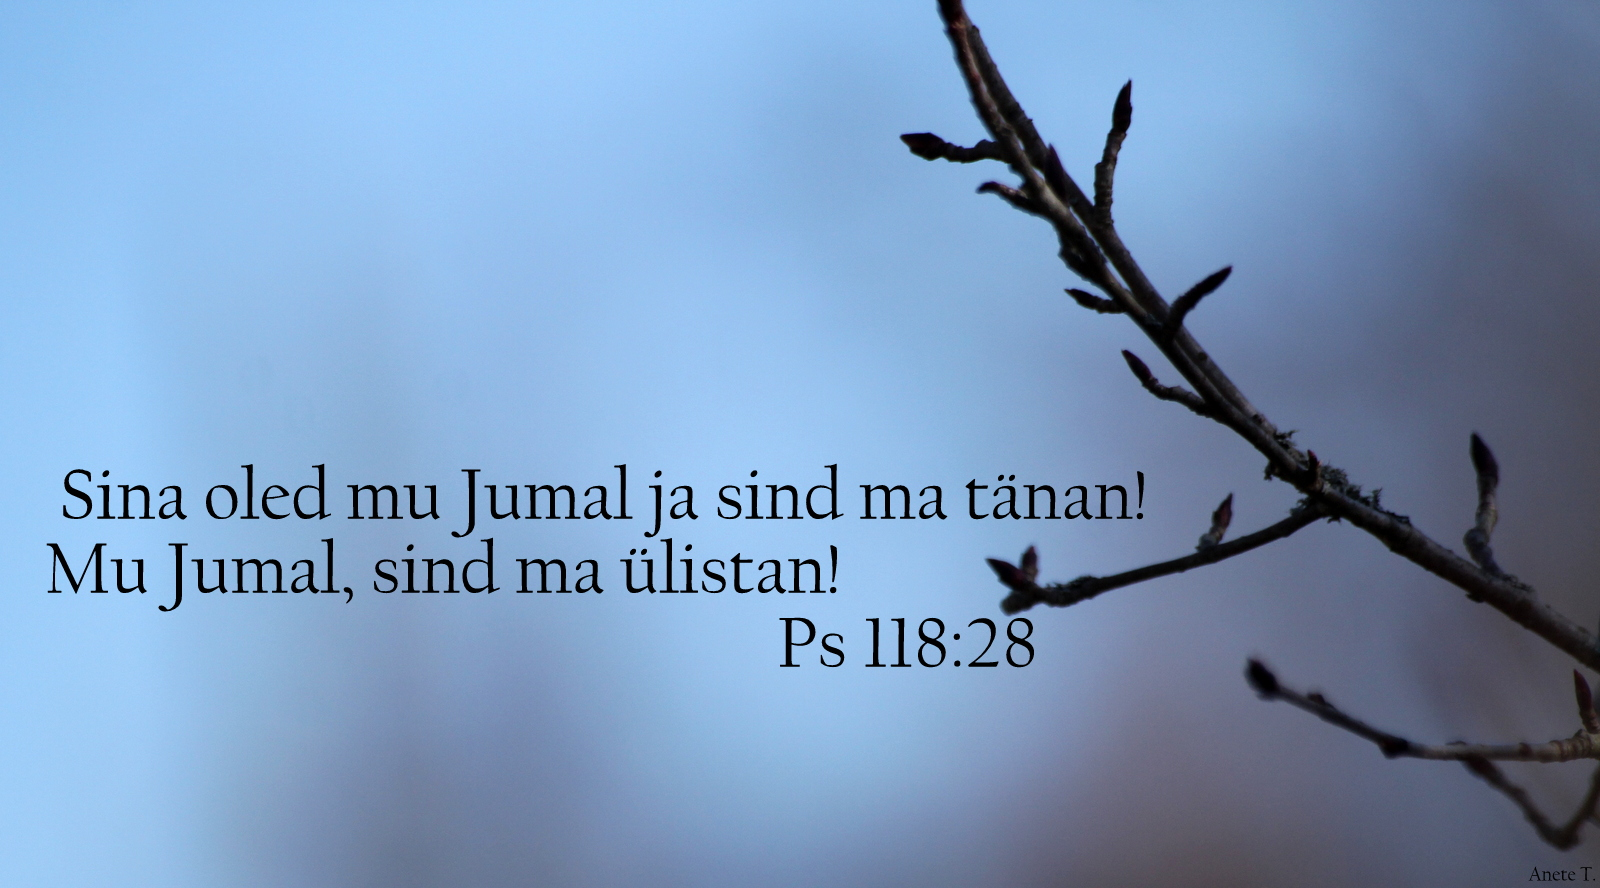 Piibel: Psalm 118:28